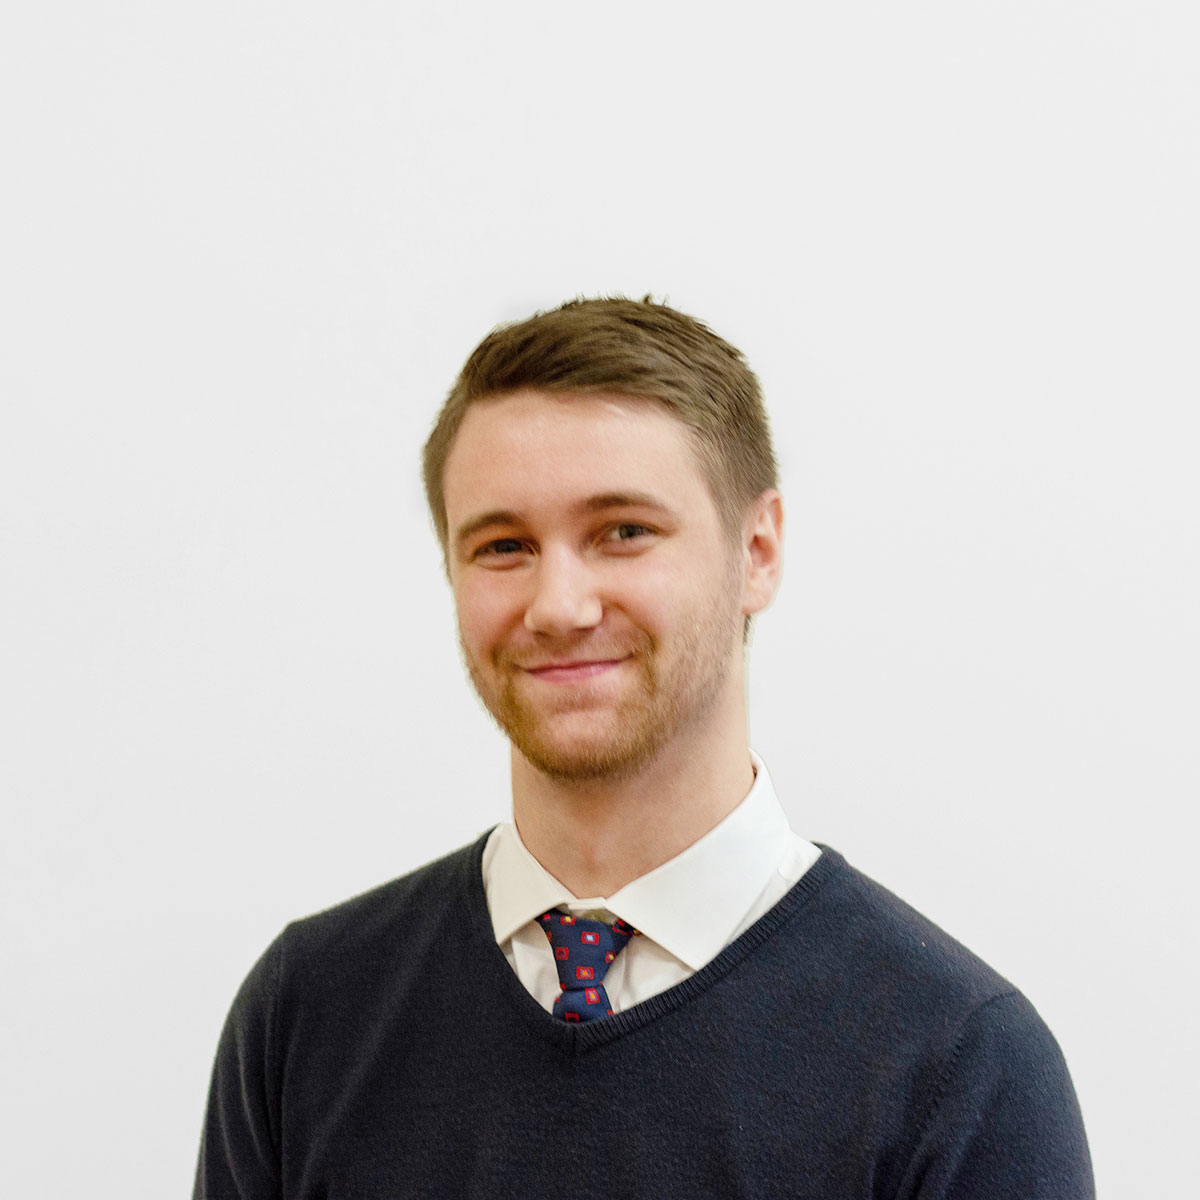 Connor J. Wilson, Director of Growth